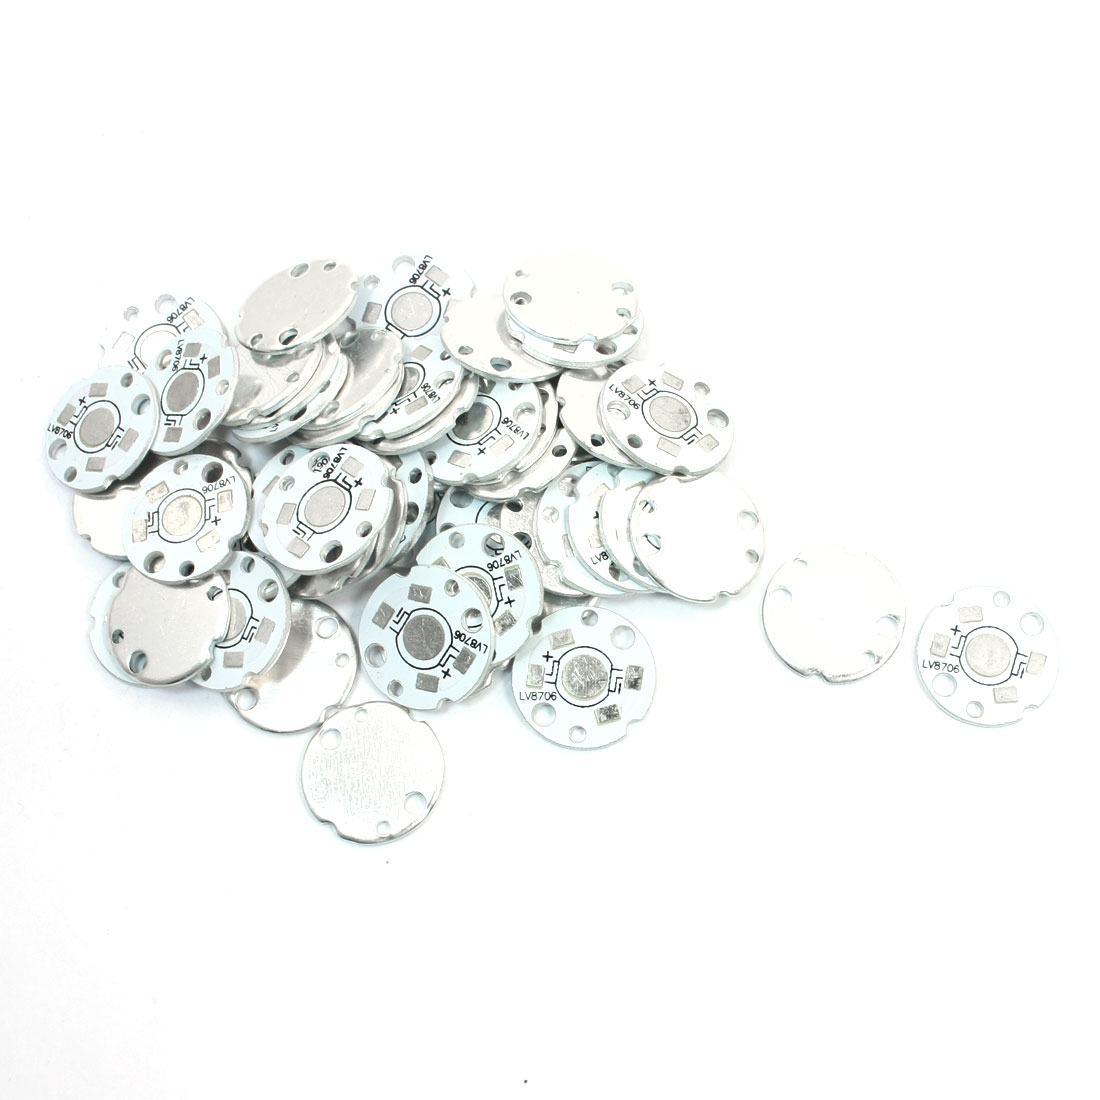 50 Pcs 20mm Diameter Aluminum Base Plate PCB Circuit Board for 1 x 1W/3W High Power LEDs Bulb